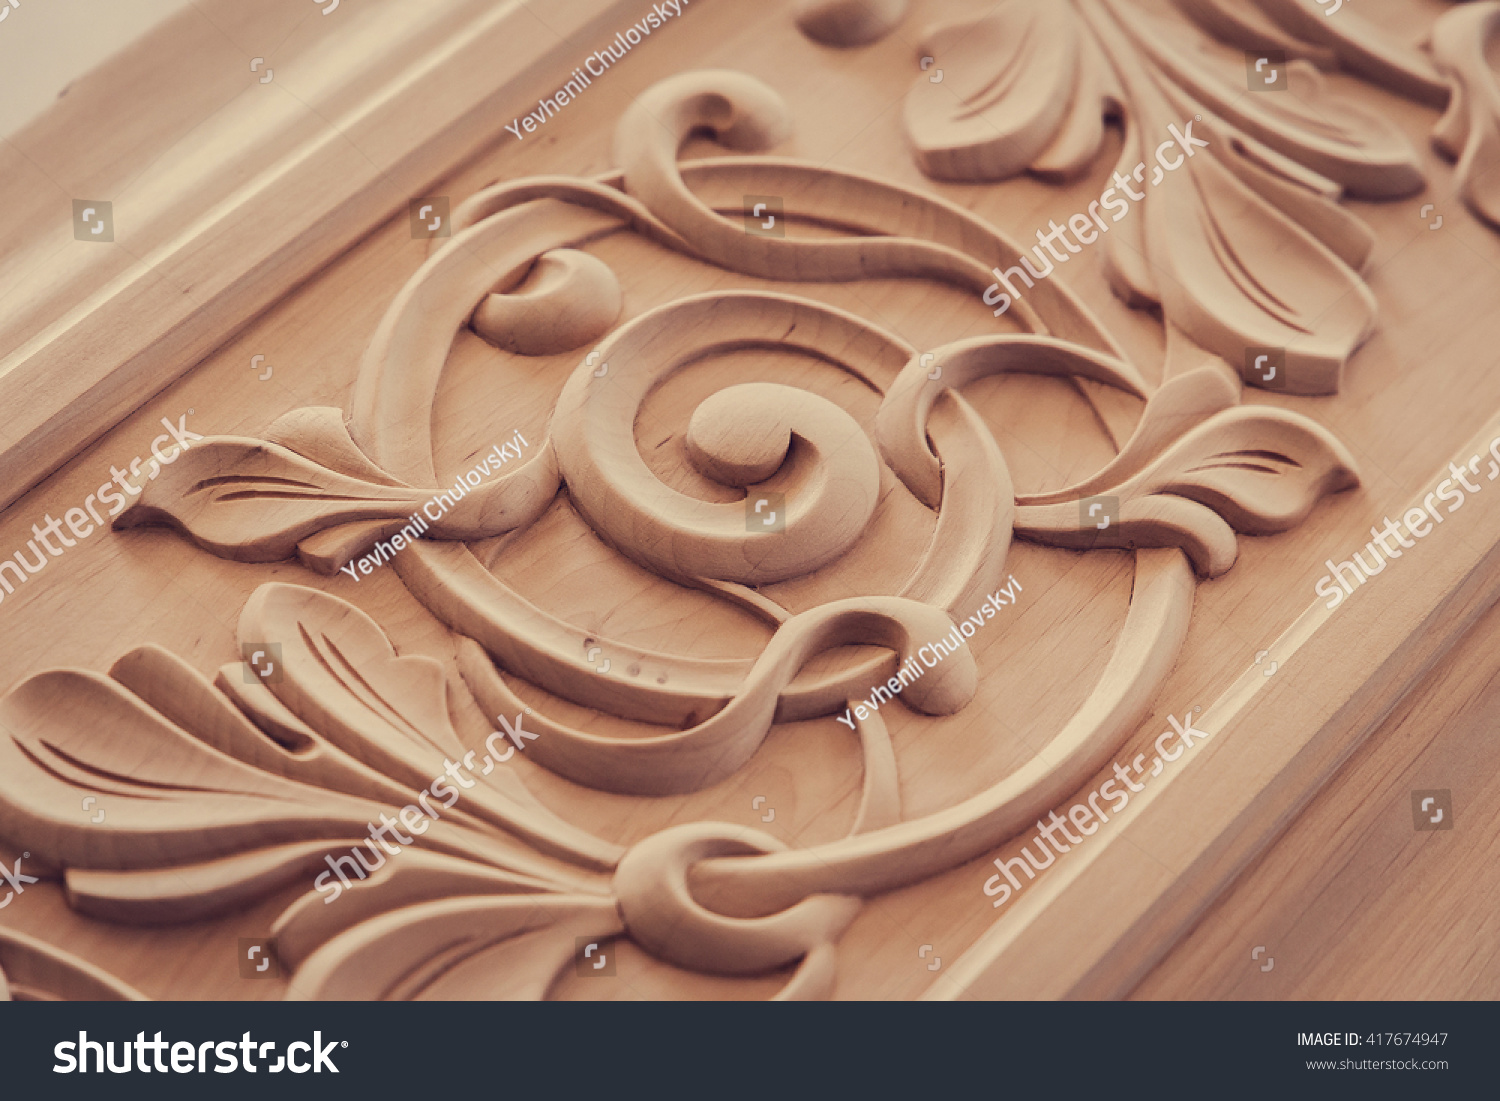 stock photo wood processing joinery work wood carving decorative abstract floral ornament pattern of